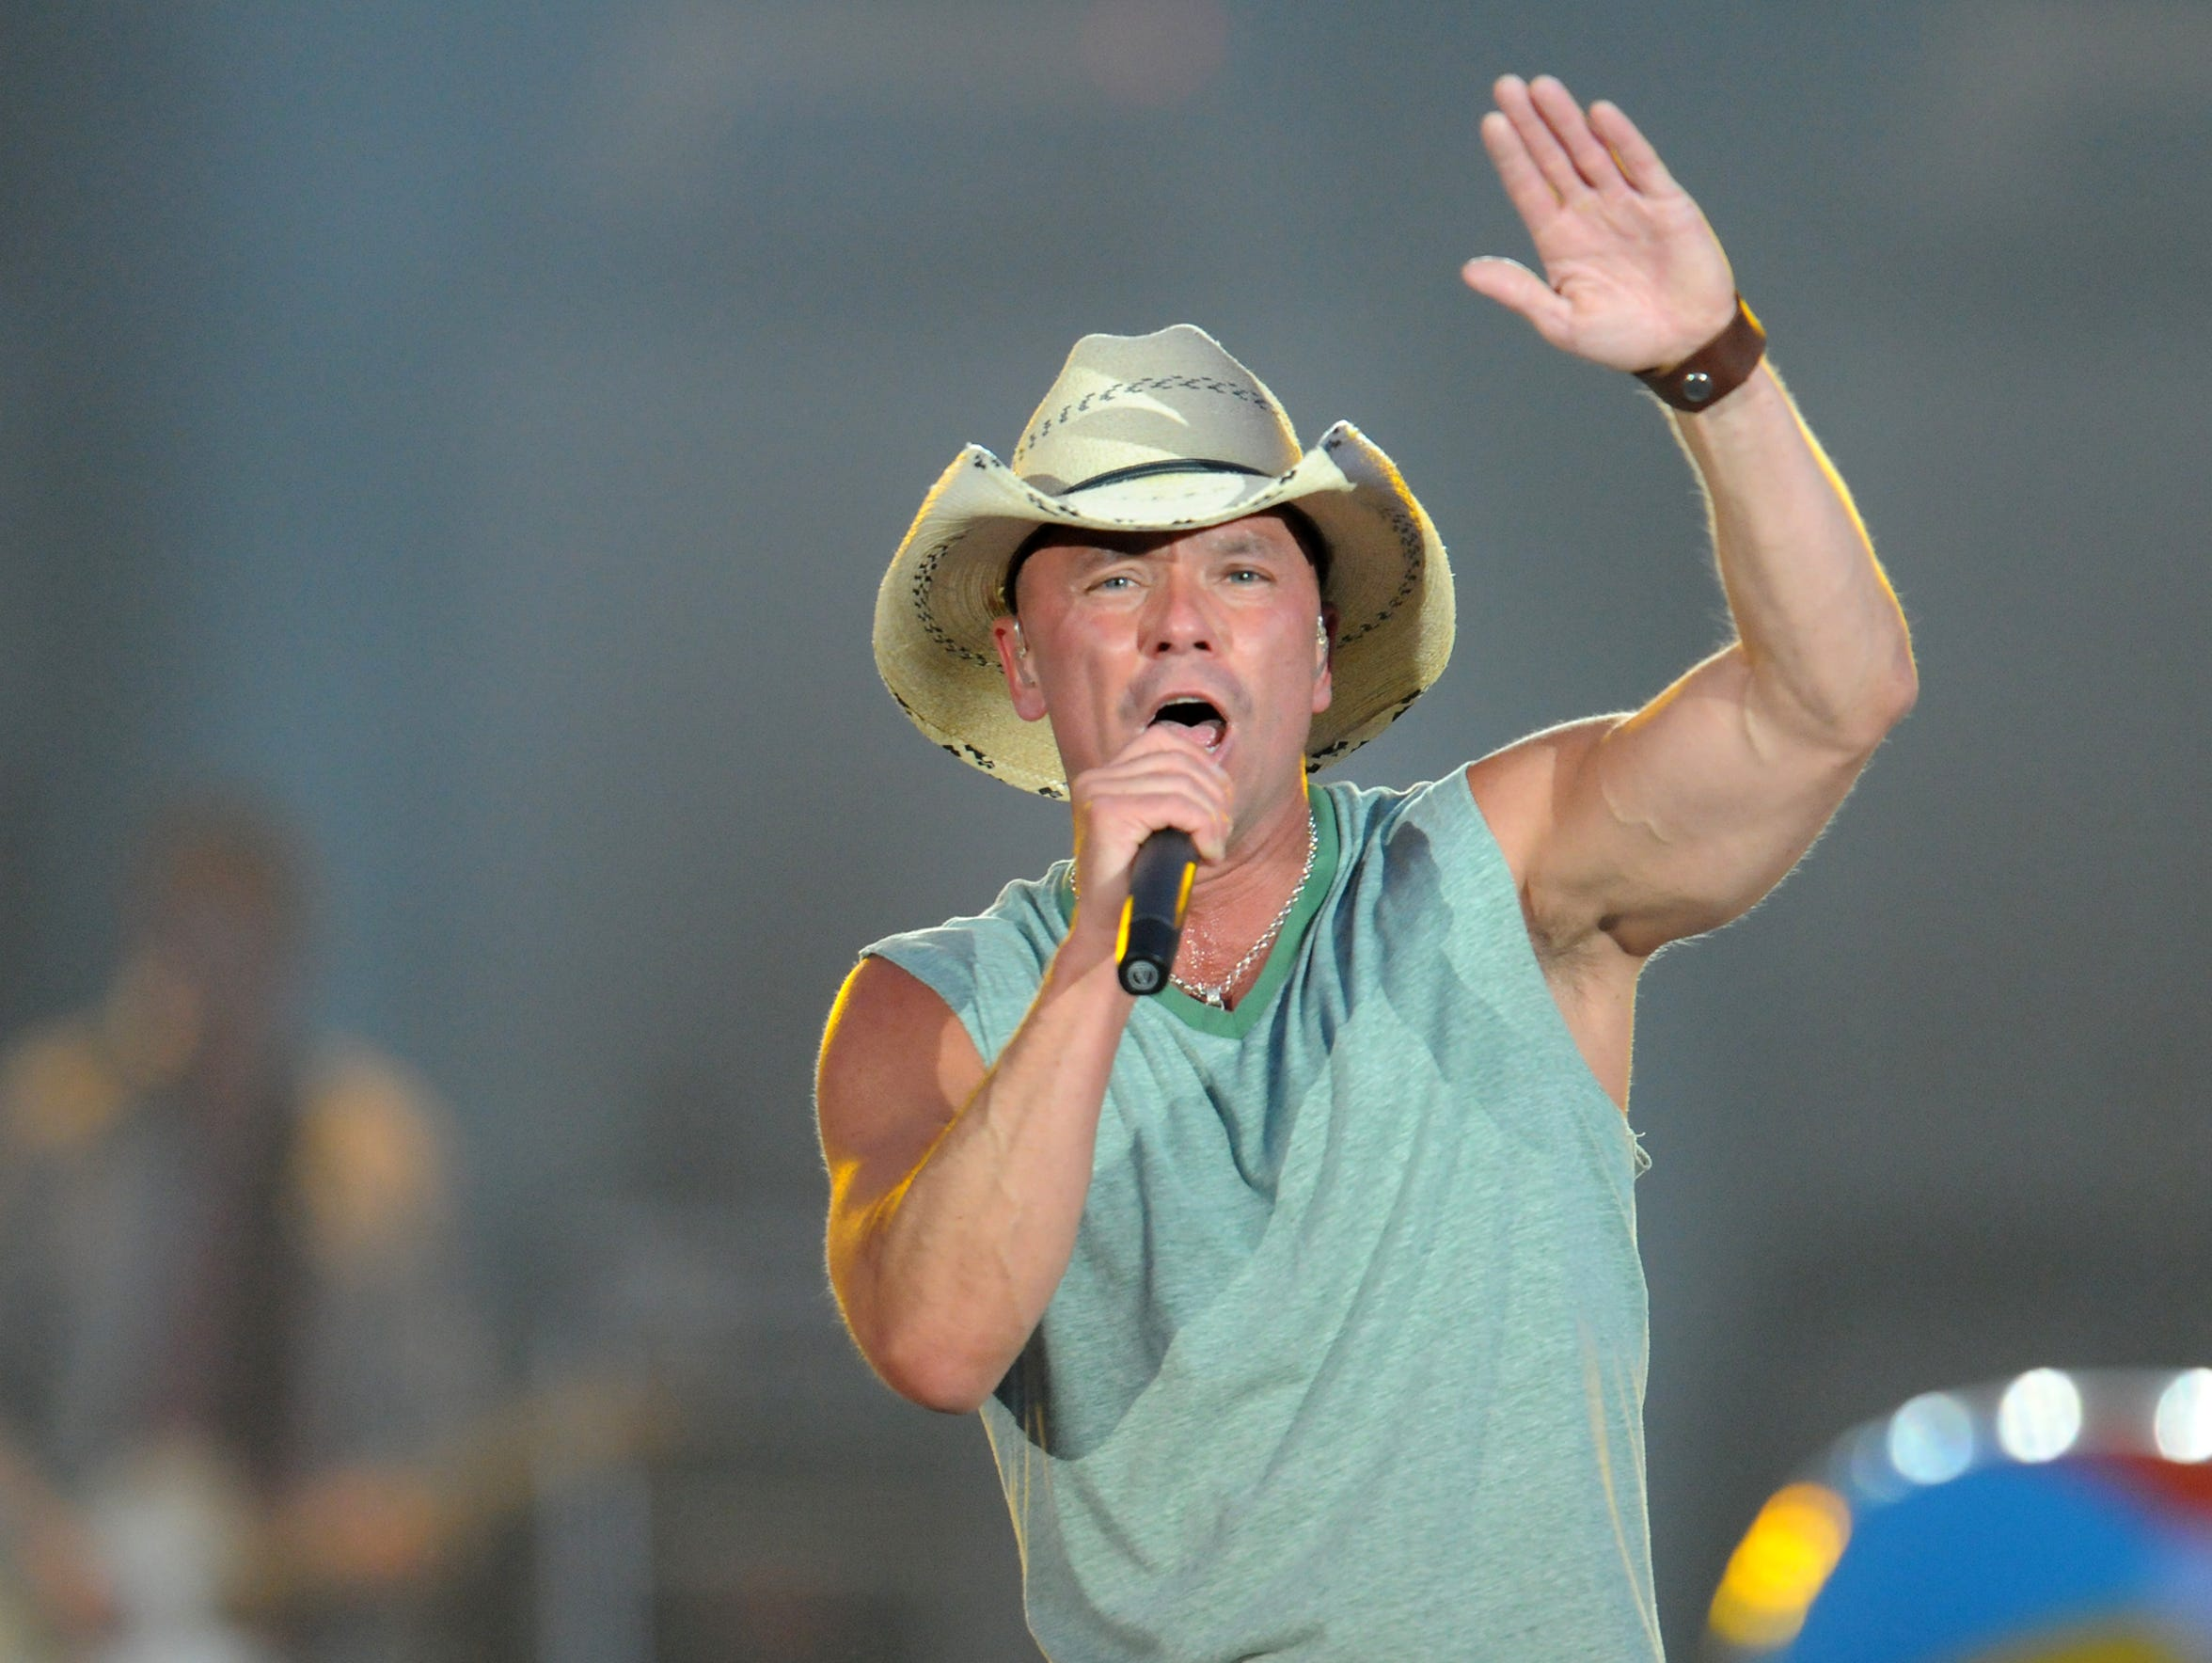 Kenny Chesney will be back at Lambeau Field June 20.